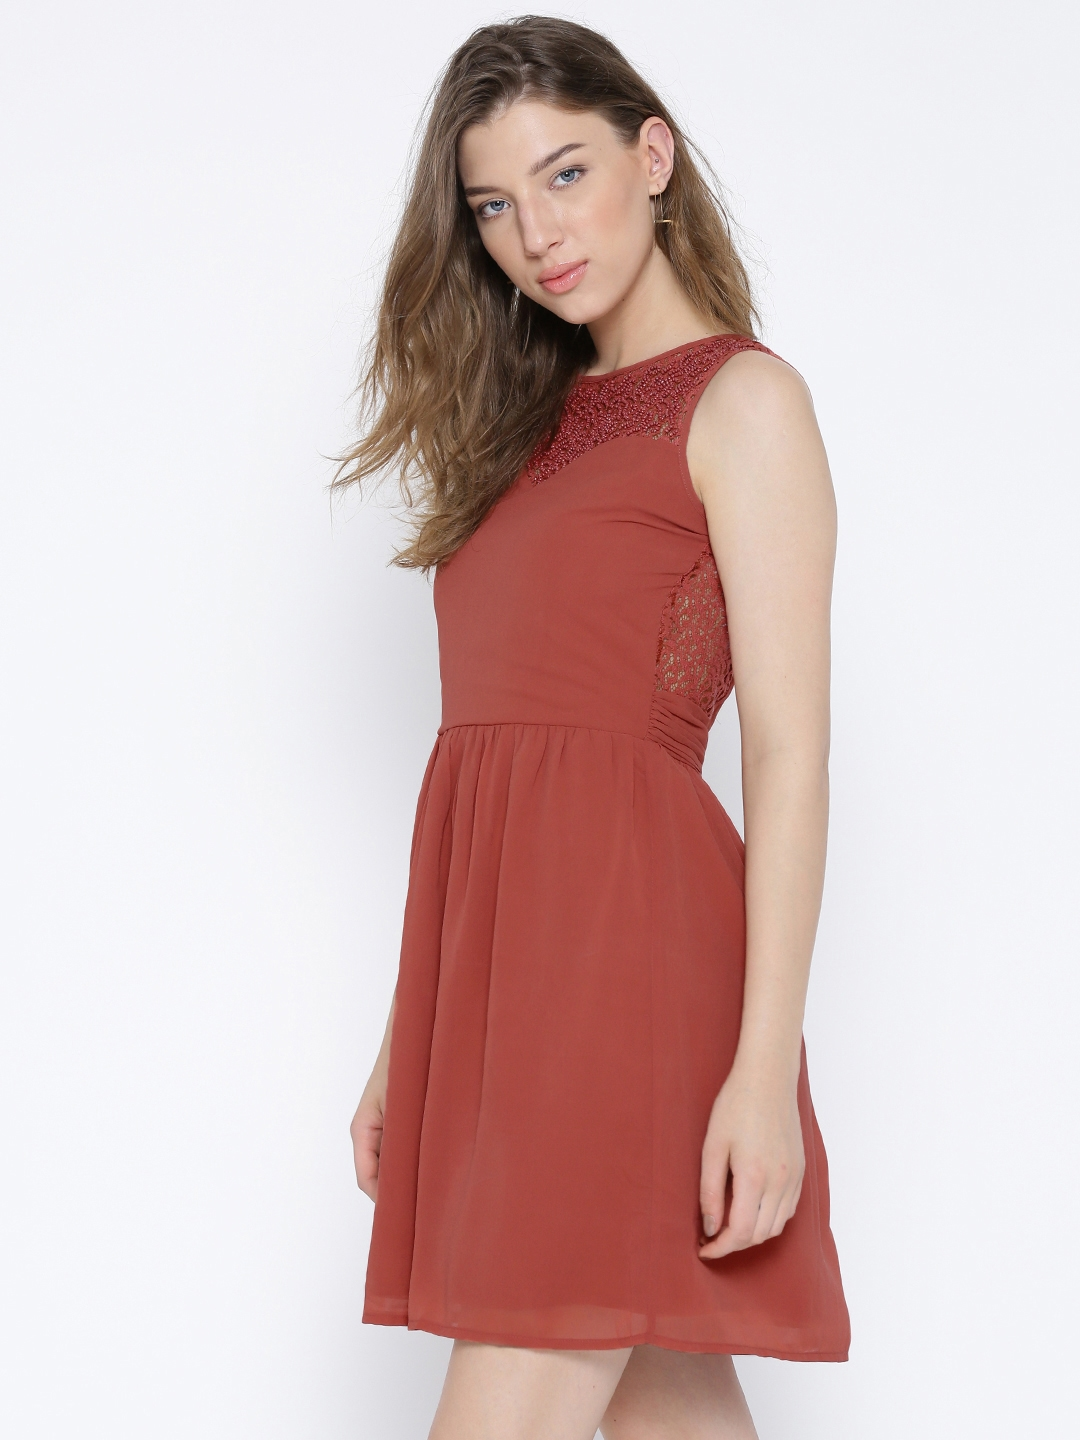 Buy ONLY Rust Brown Fit   Flare Dress - Dresses for Women 1239910 ... 8159a8bcba11